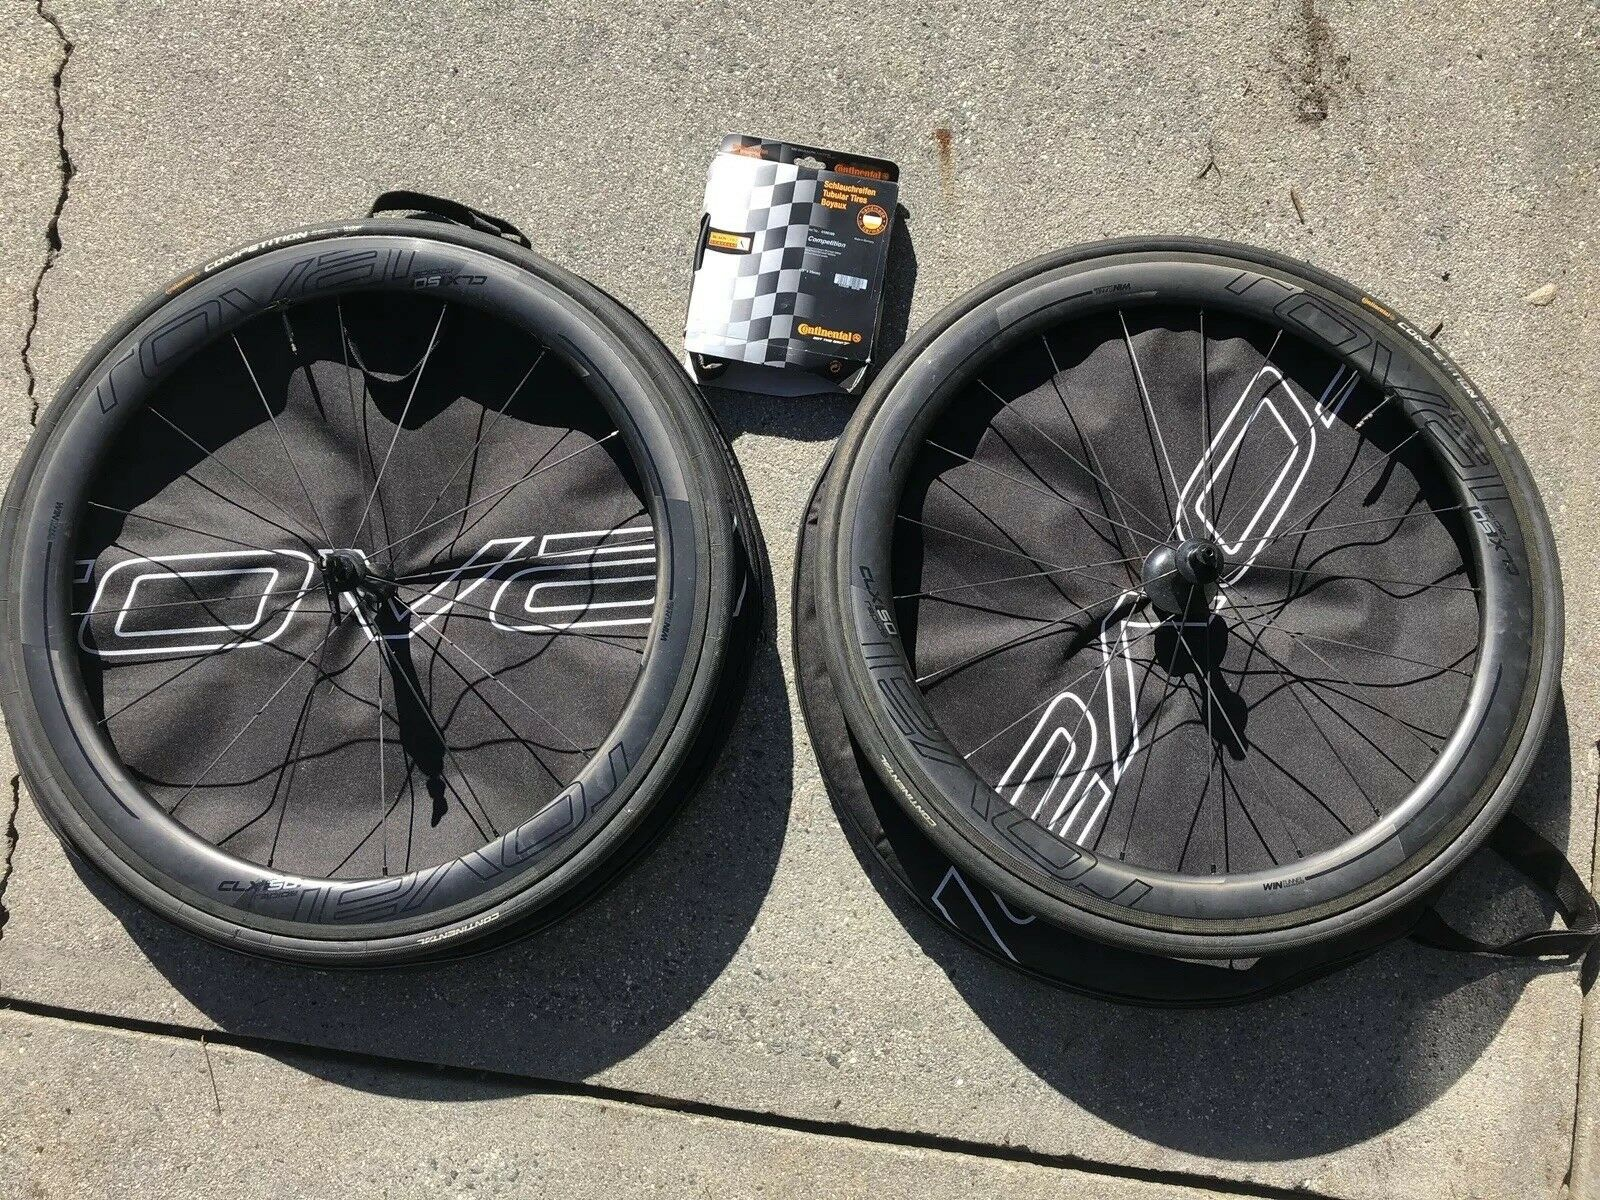 Roval CLX 50 Tubular  Wheelset CeramicSpeed + 3 Continental Competition Tires  the latest models